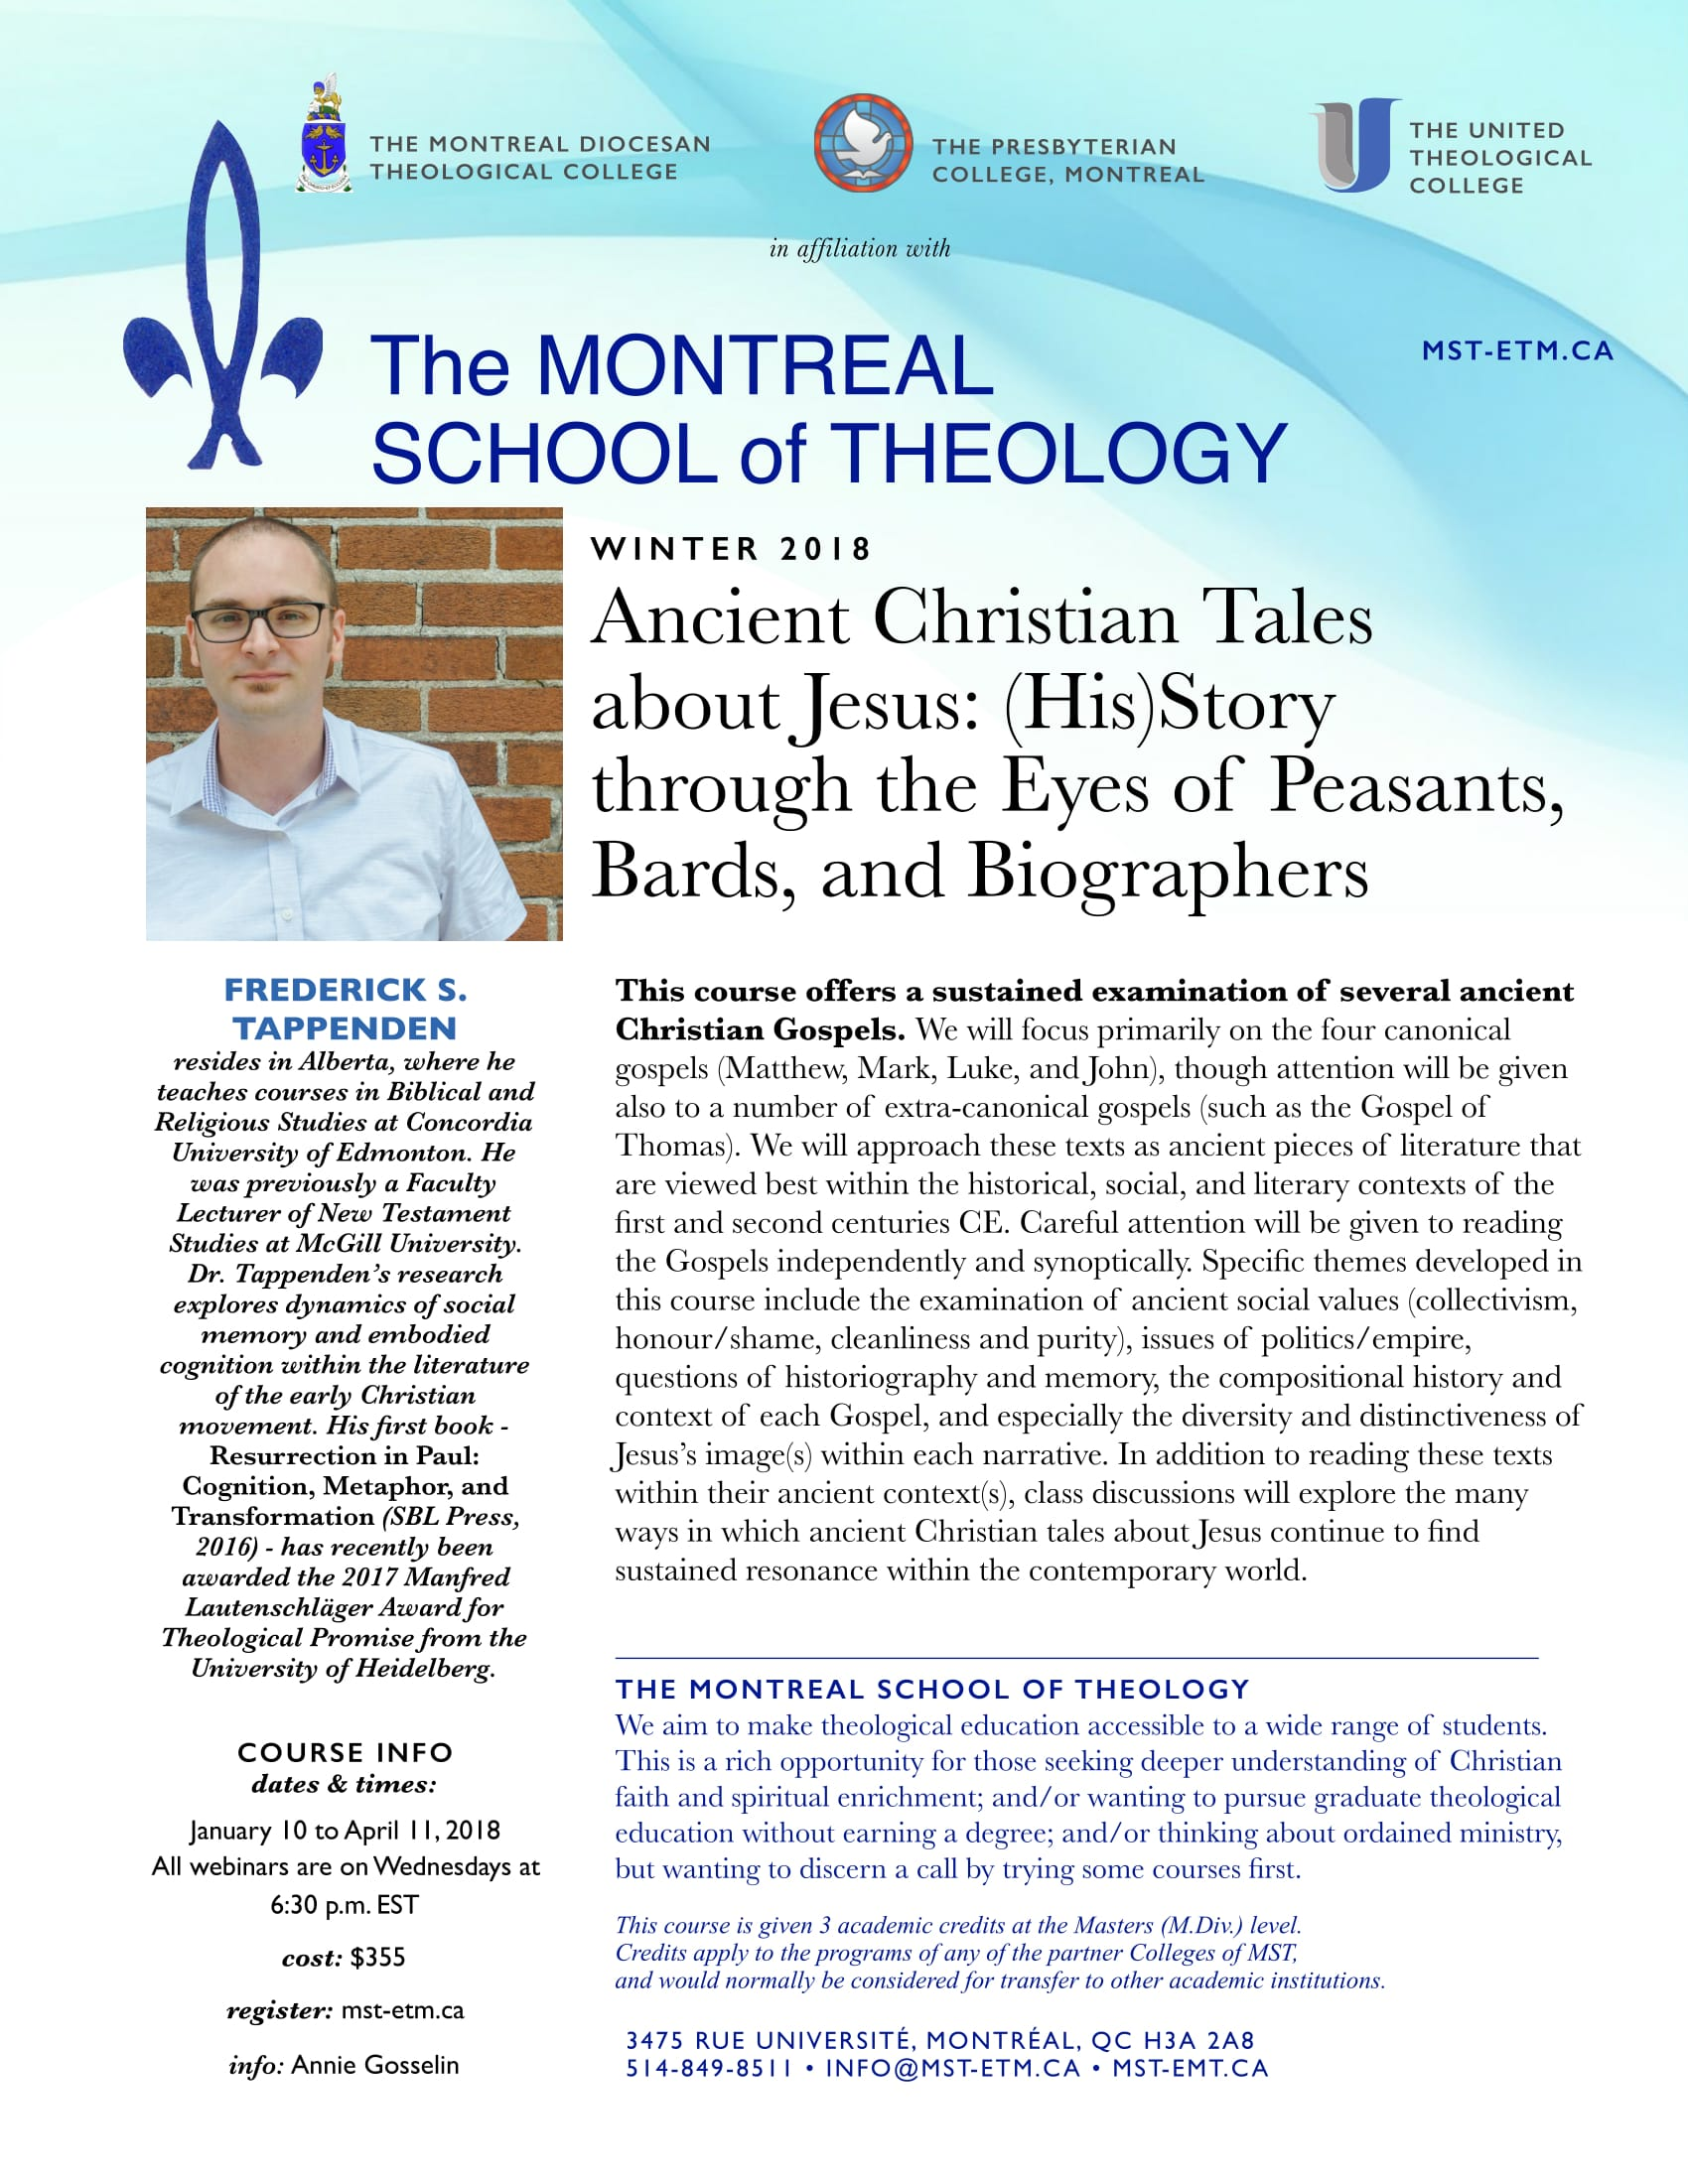 Ancient Christian Tales about Jesus: (His) Story through the Eyes of Peasants, Bards, and Biographers - Winter 2018 on-line credit course